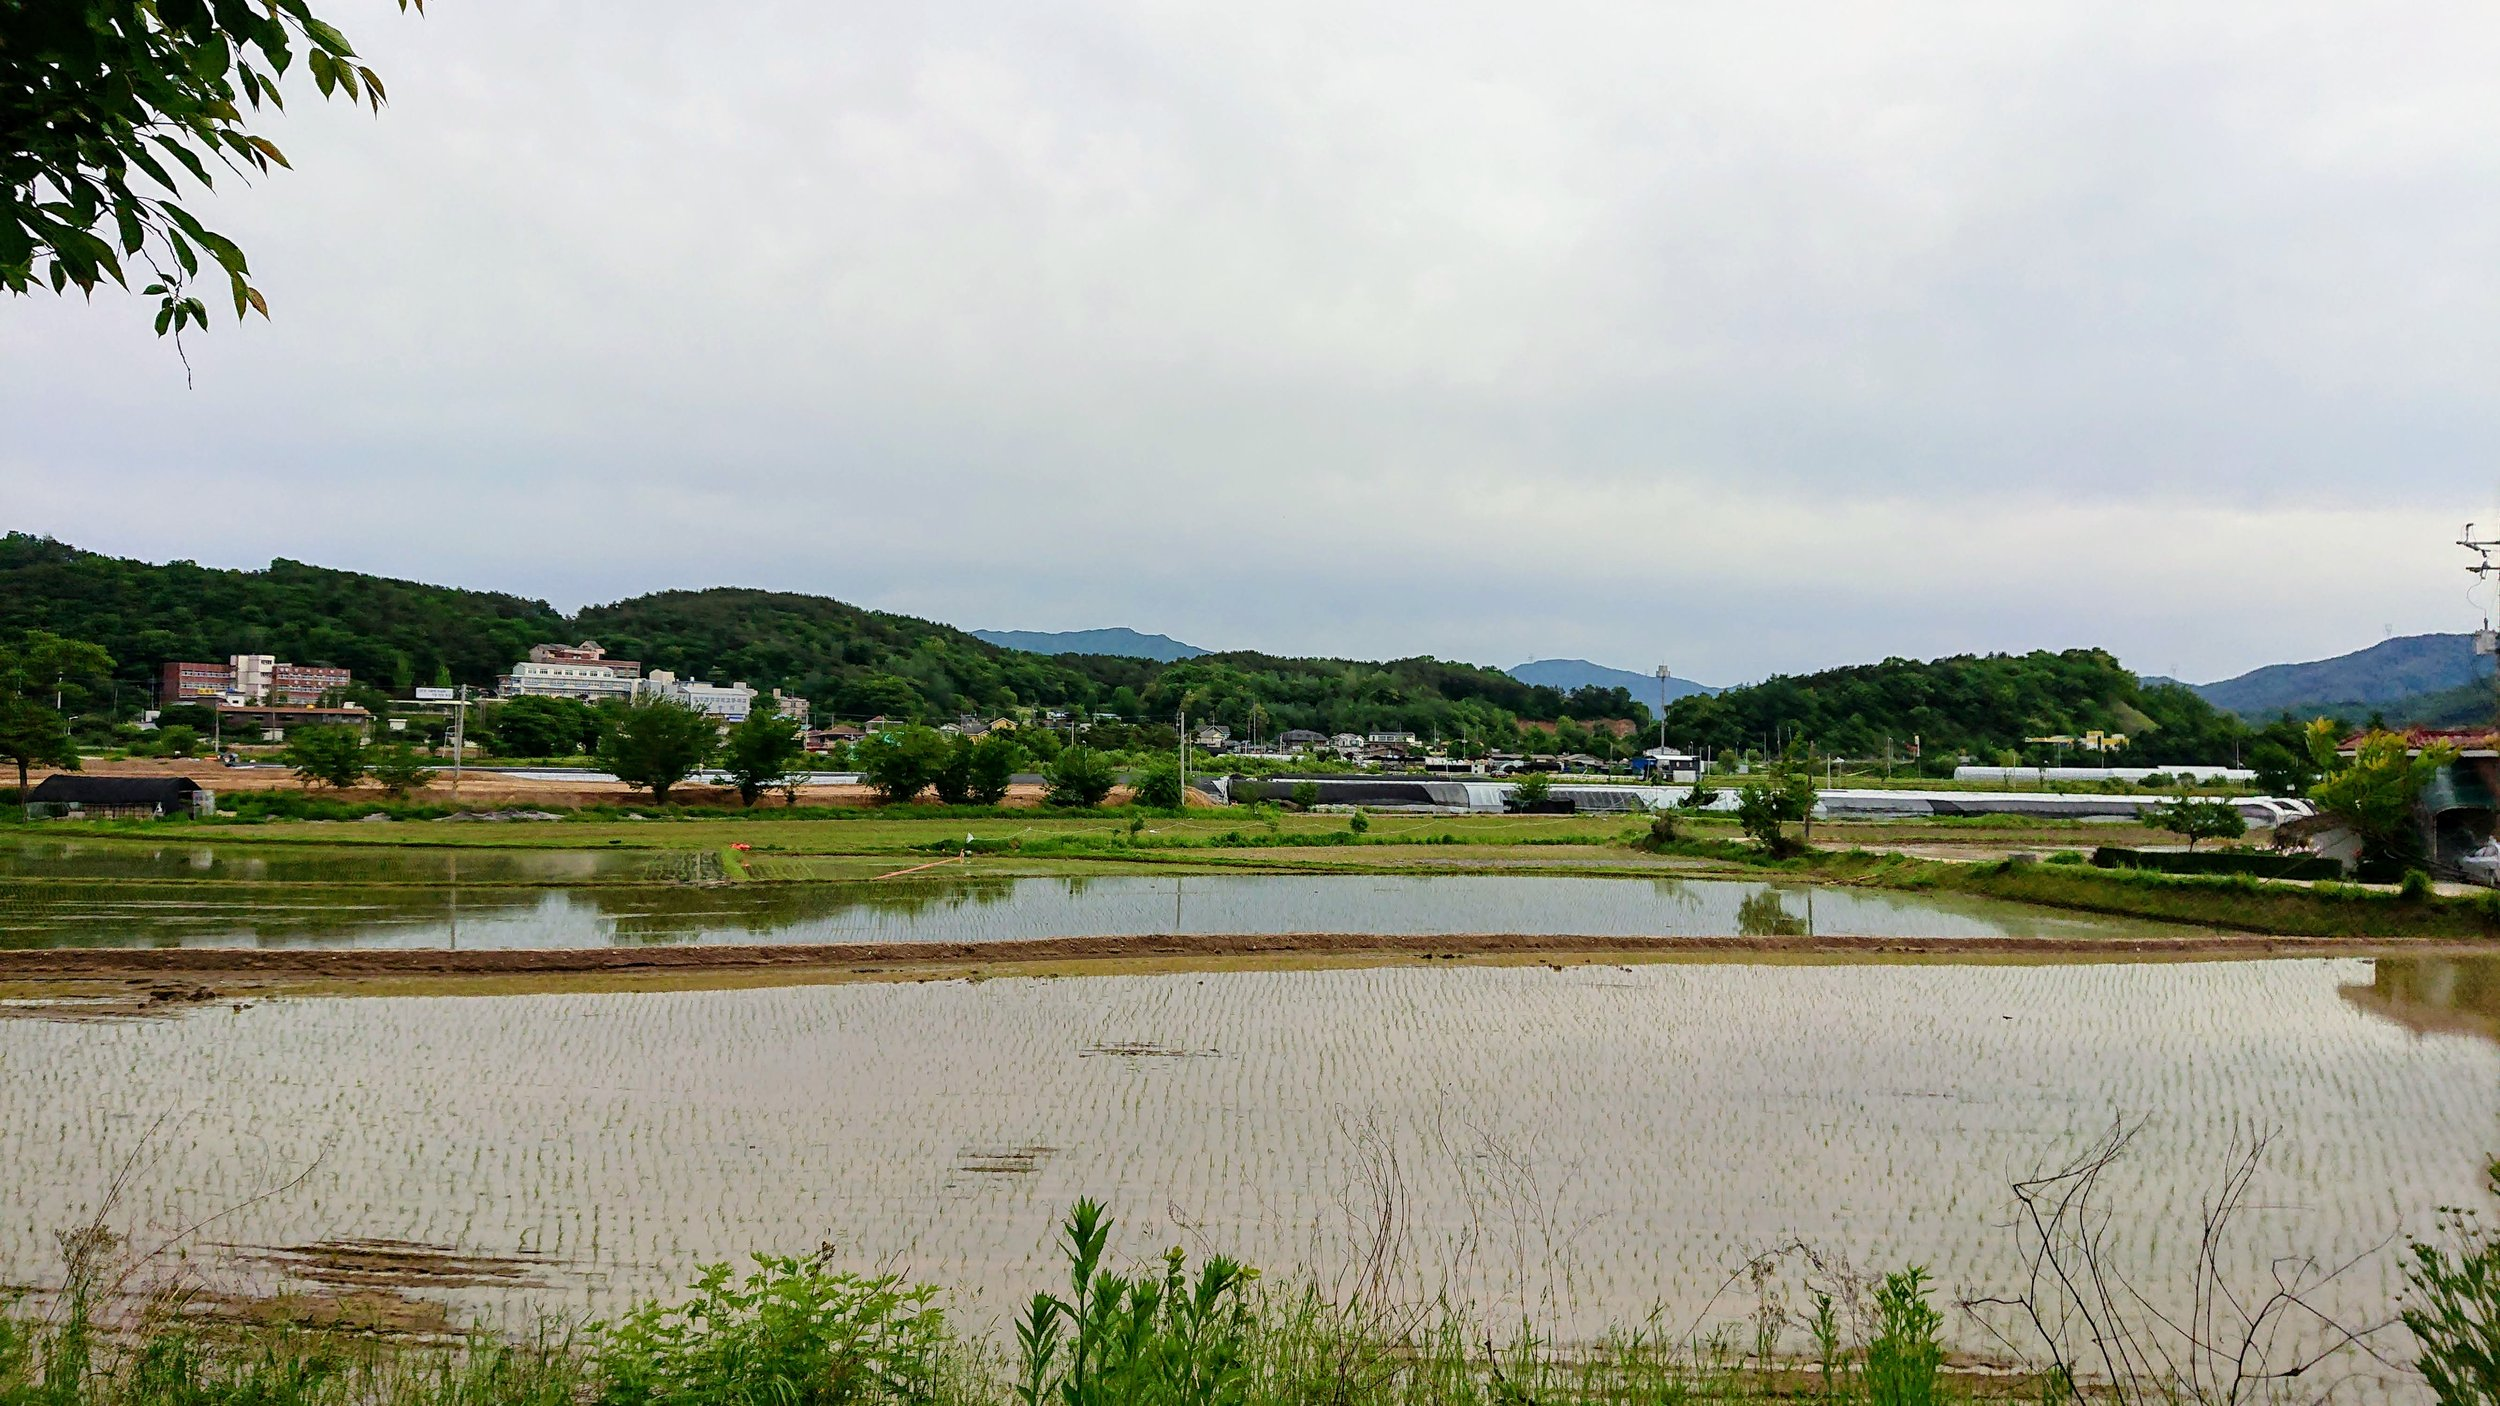 Rice is the most valuable crop in South Korea, and used to represent 90 percent of all grain production, and over 40 percent of farm income.